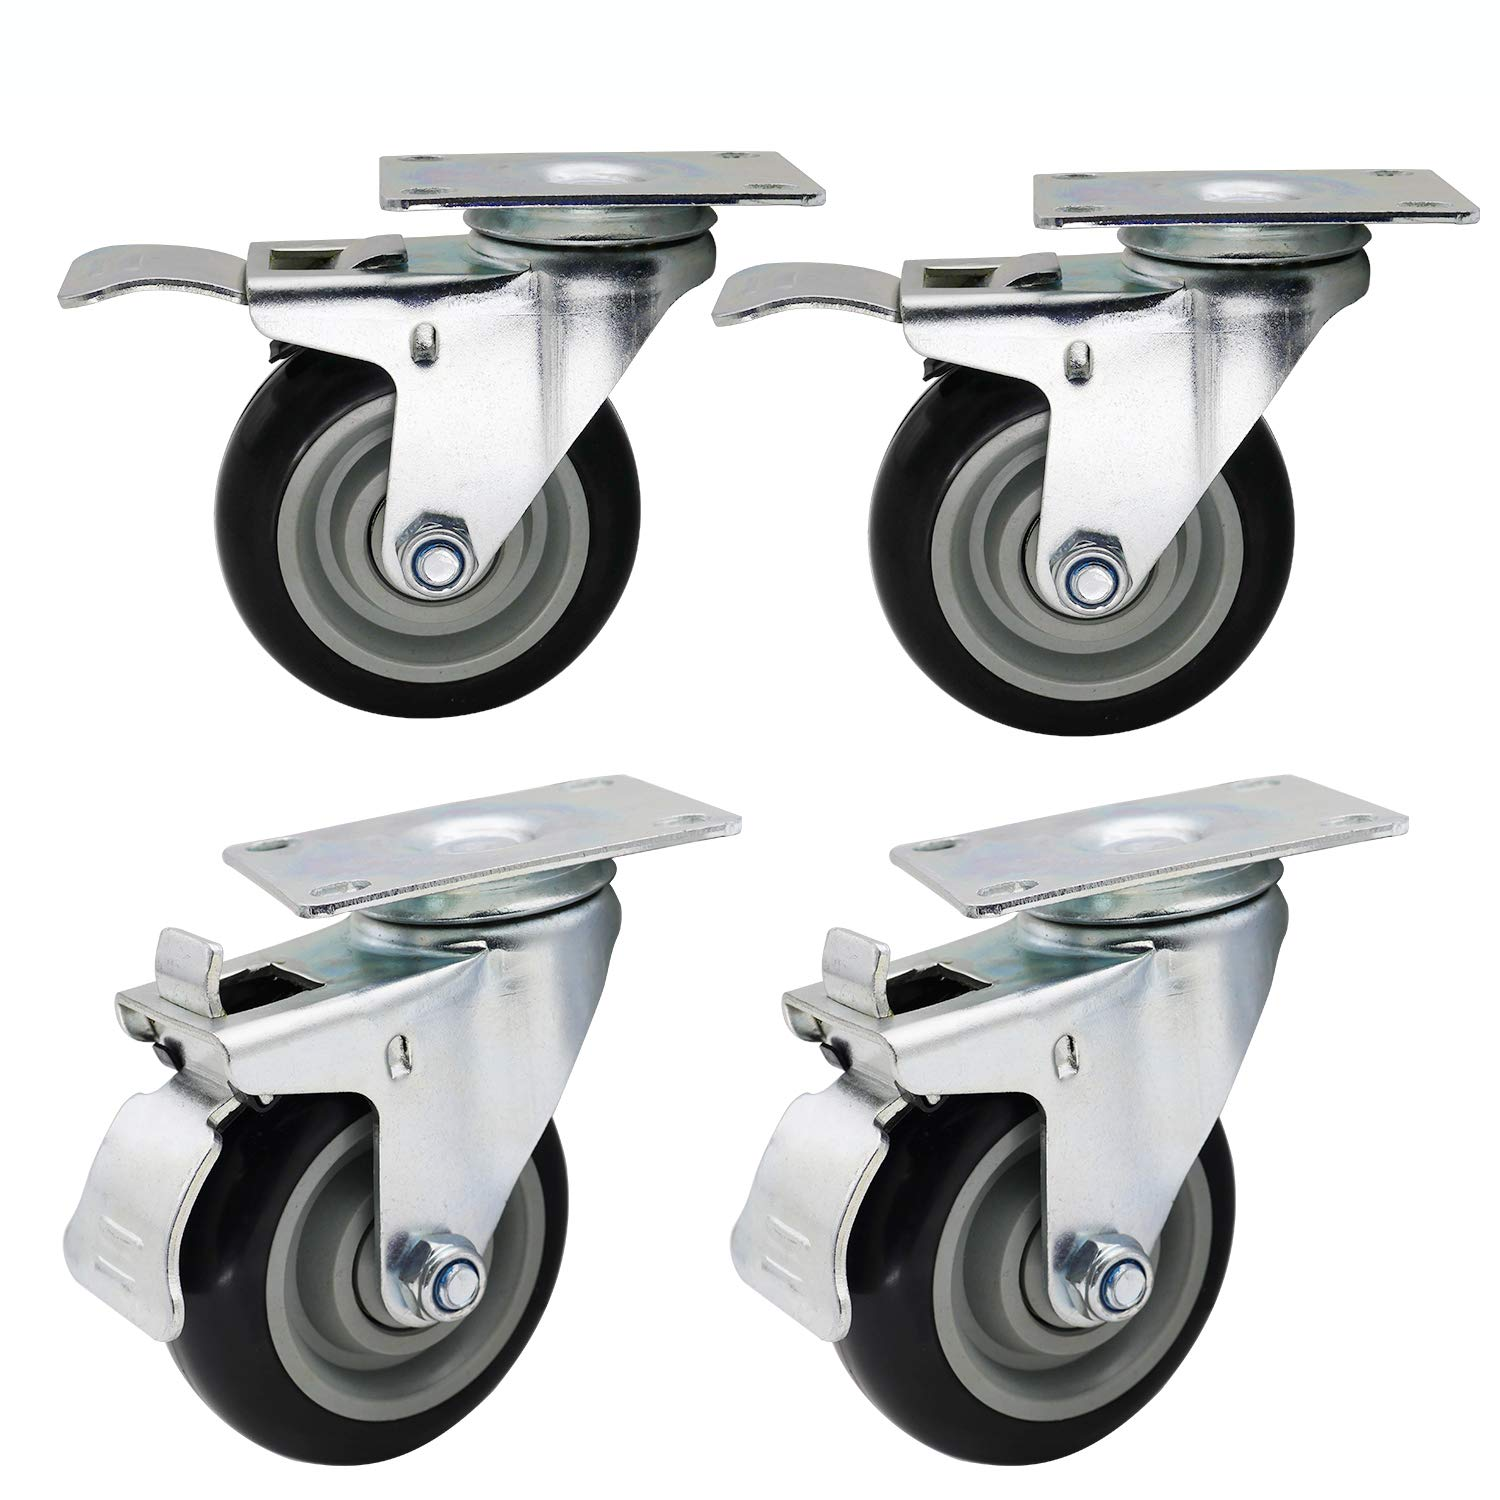 Dr.Luck 4 Inch Black PU Rubber Swivel with Brake Heavy Duty Caster Wheel Double Ball Bearing 360 Degree Top Plate Total Load Capacity 1200 Lbs - 300 Lbs per Caster, Set of 4